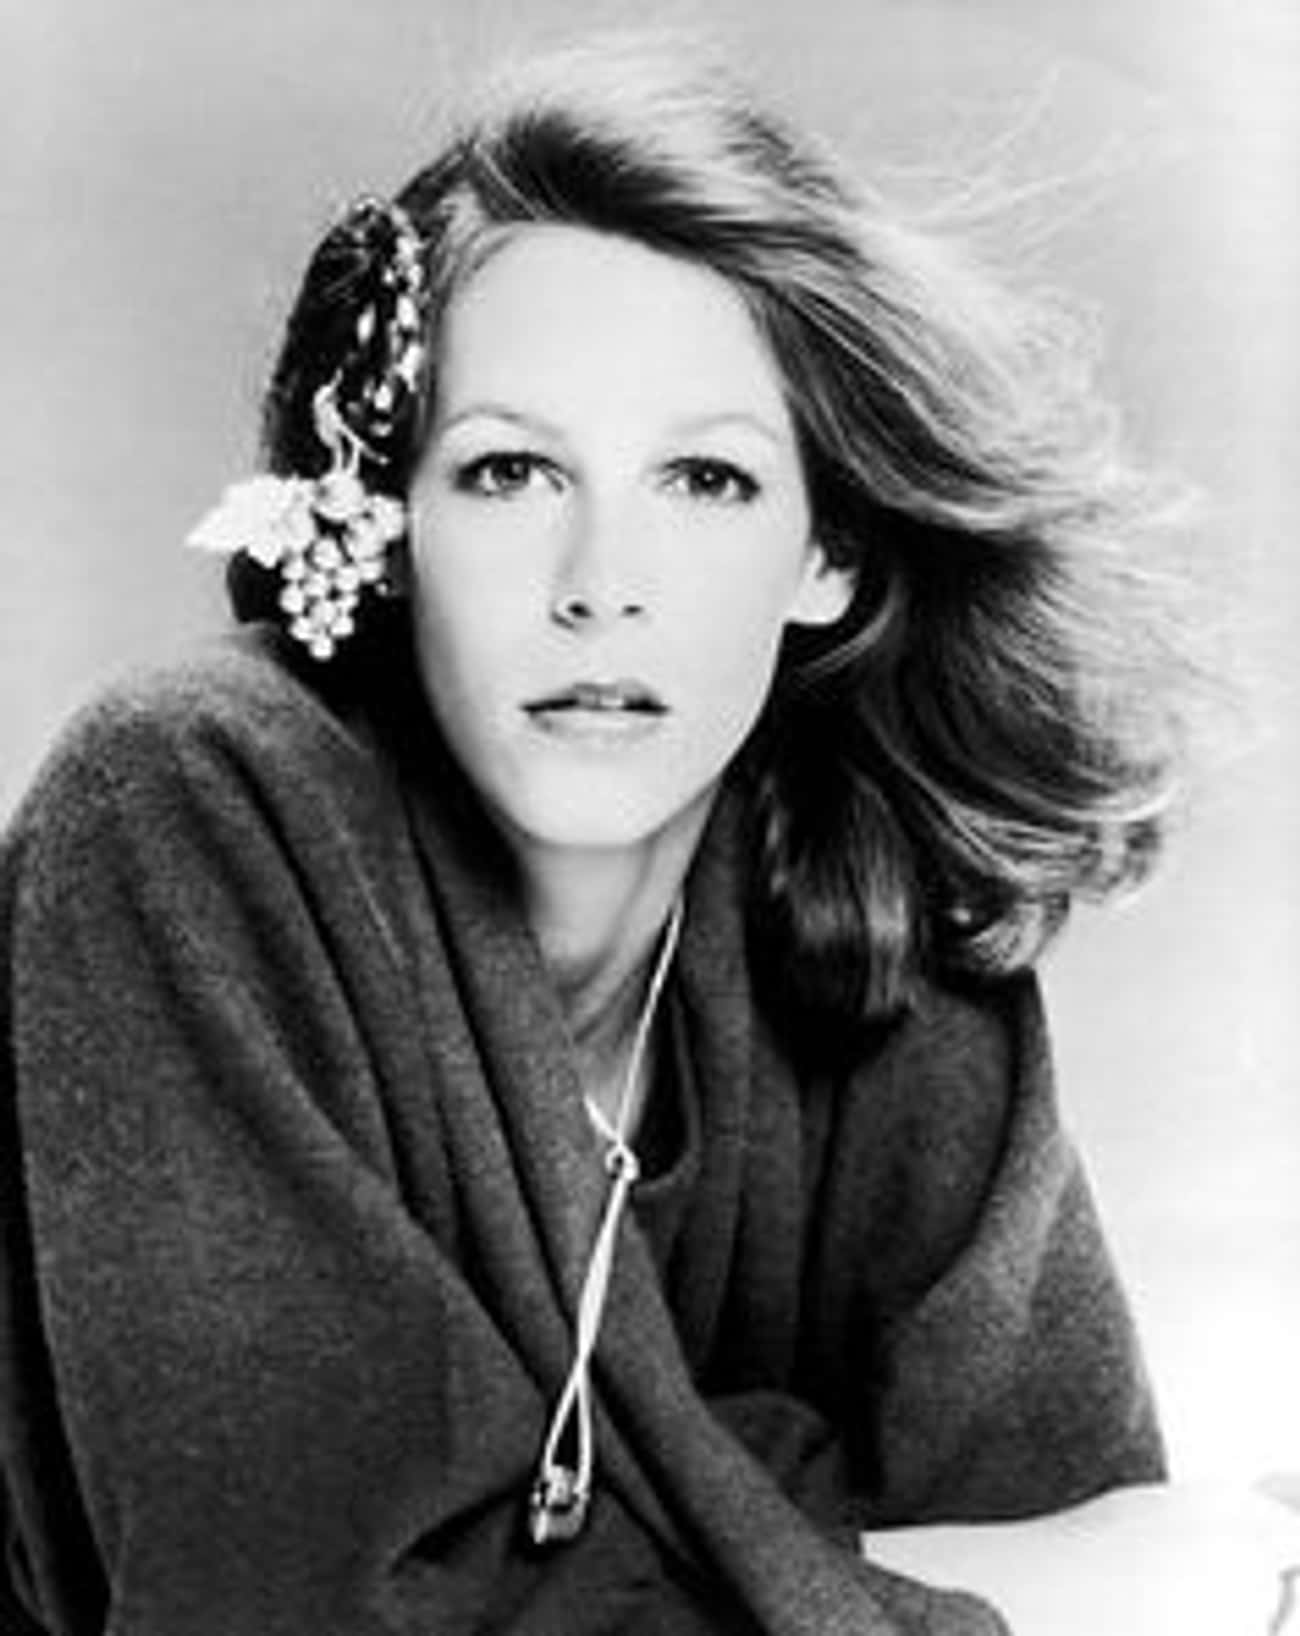 Jamie Wrapped Up In A Comfy Sw is listed (or ranked) 1 on the list Take A Trip Down Memory Lane With These Pictures Of Young Jamie Lee Curtis